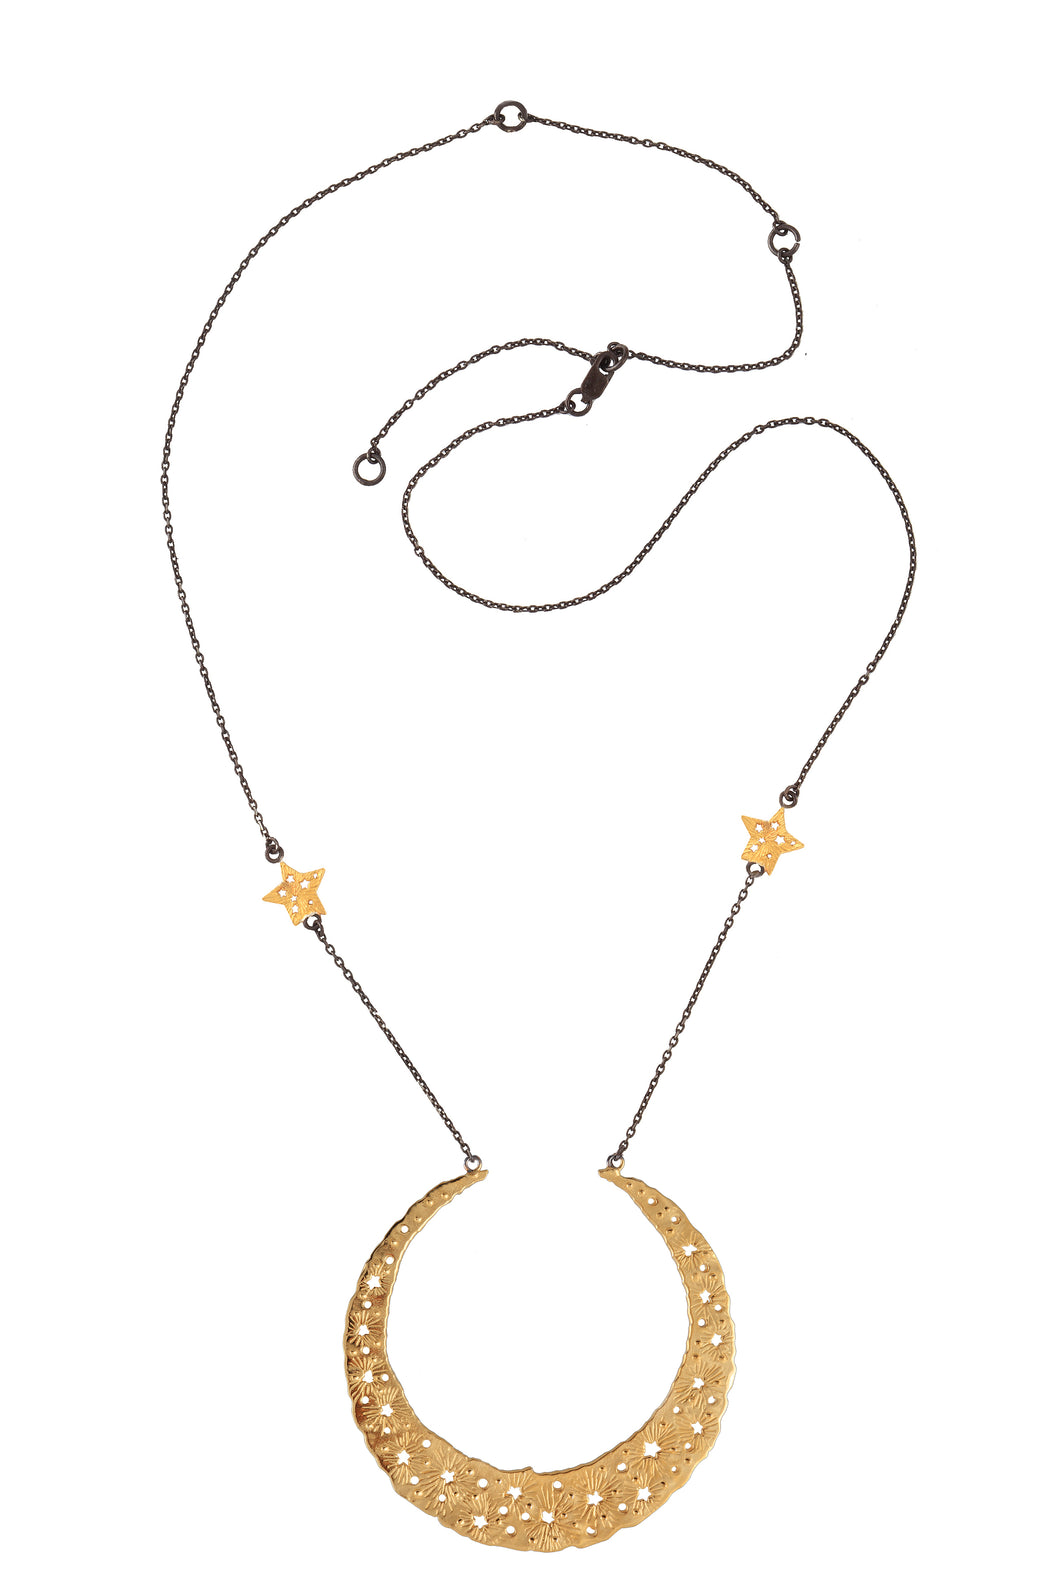 Moon queen necklace with large moon pendant, 2 stars on the chain, 75 сm, gold plated and oxide